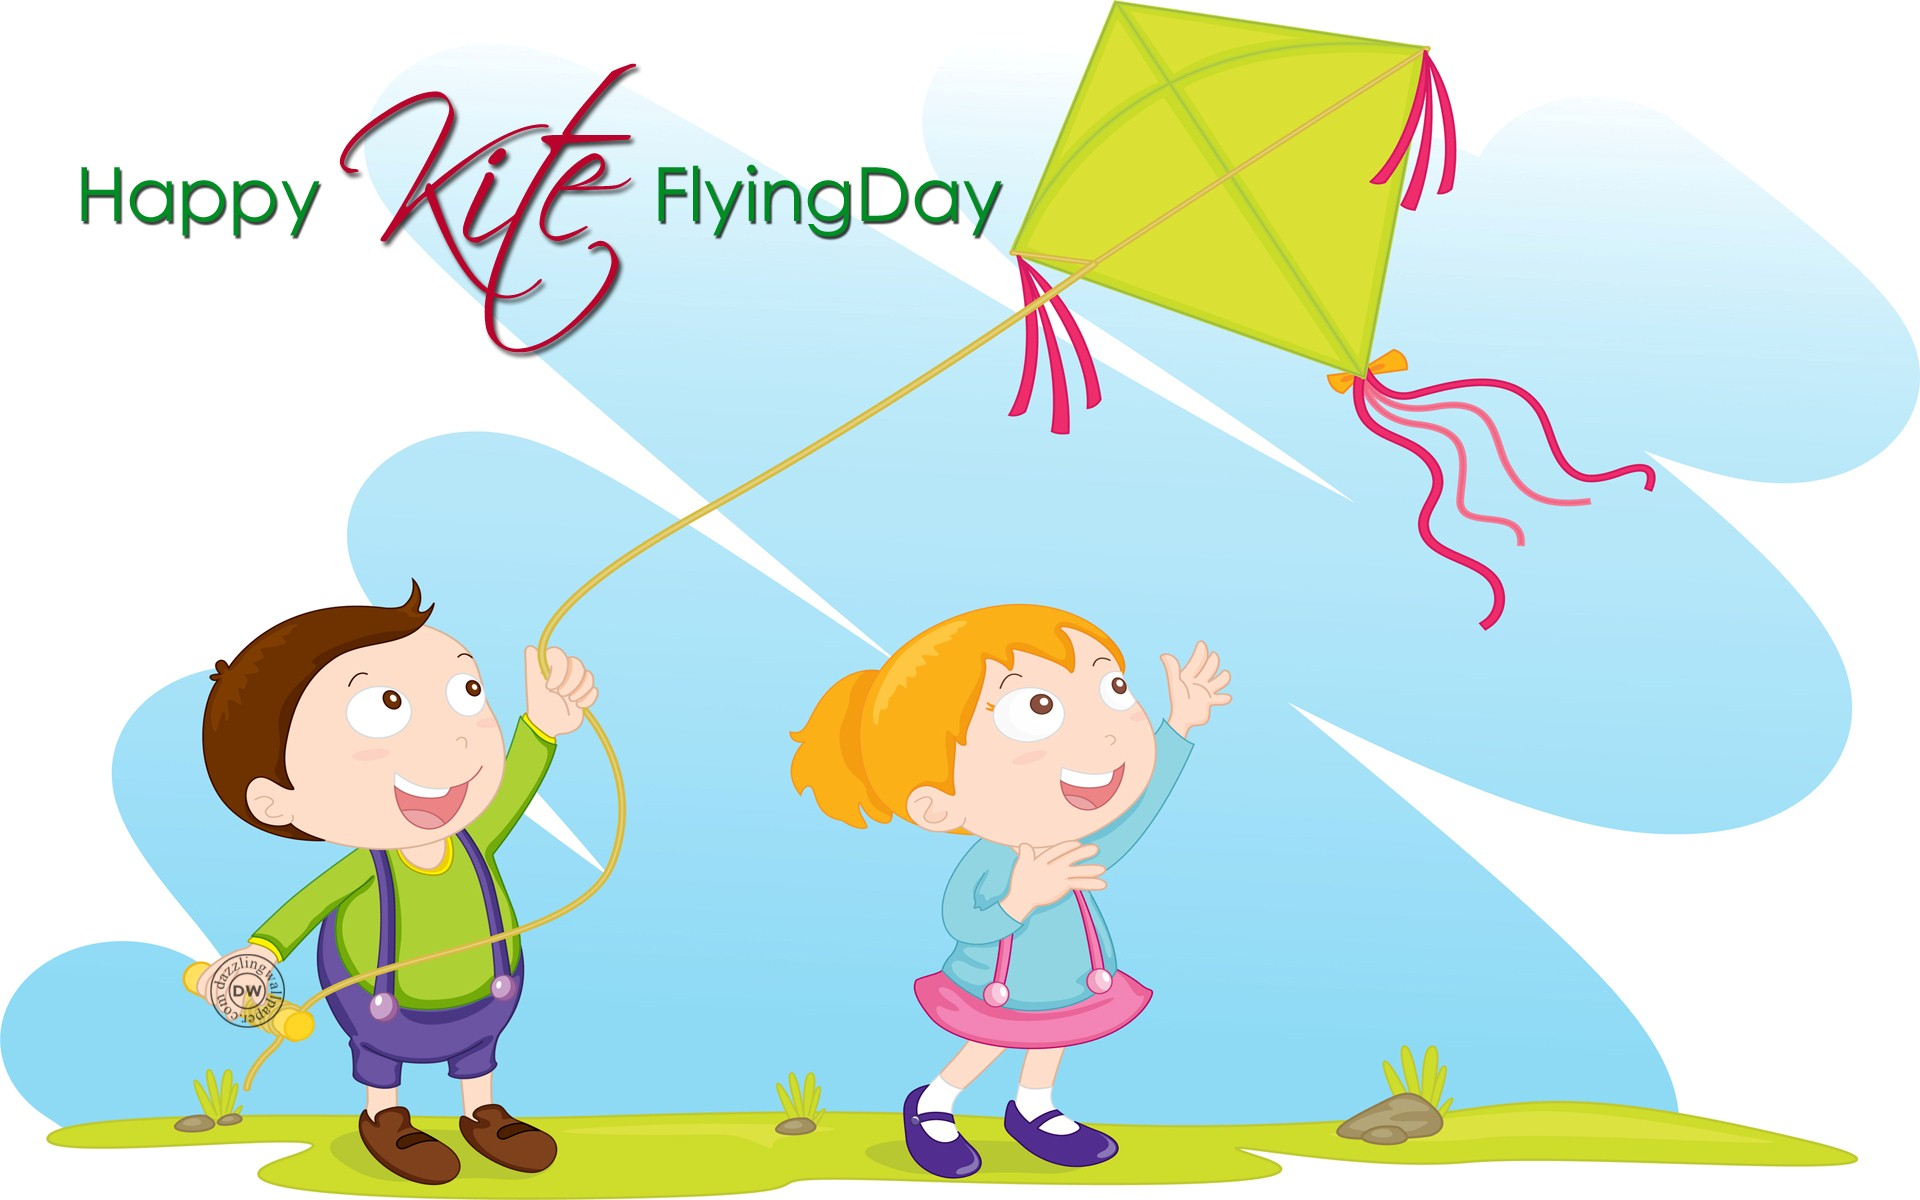 Happy Kite Day 2019 Images